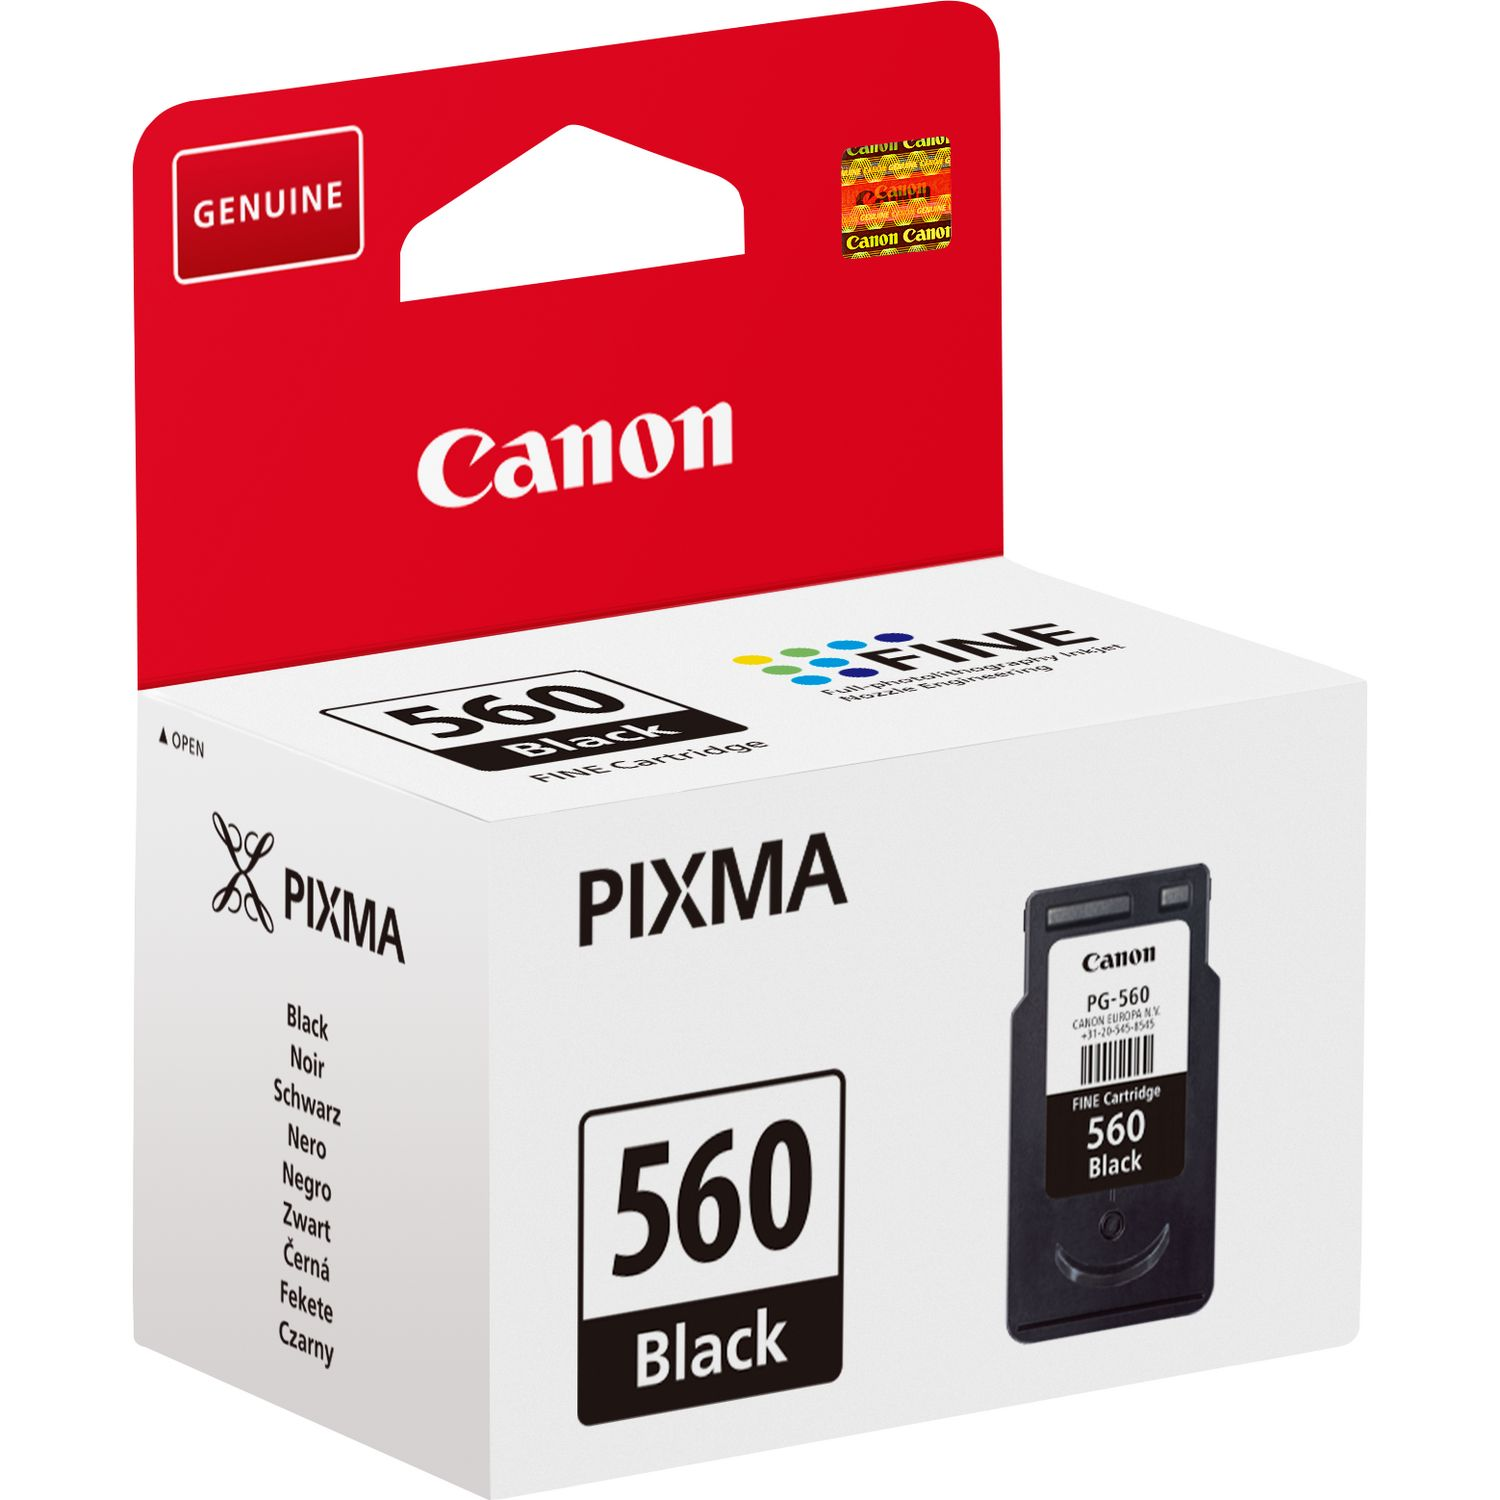 PG560 Black Original Canon Printer Ink Cartridge PG-560